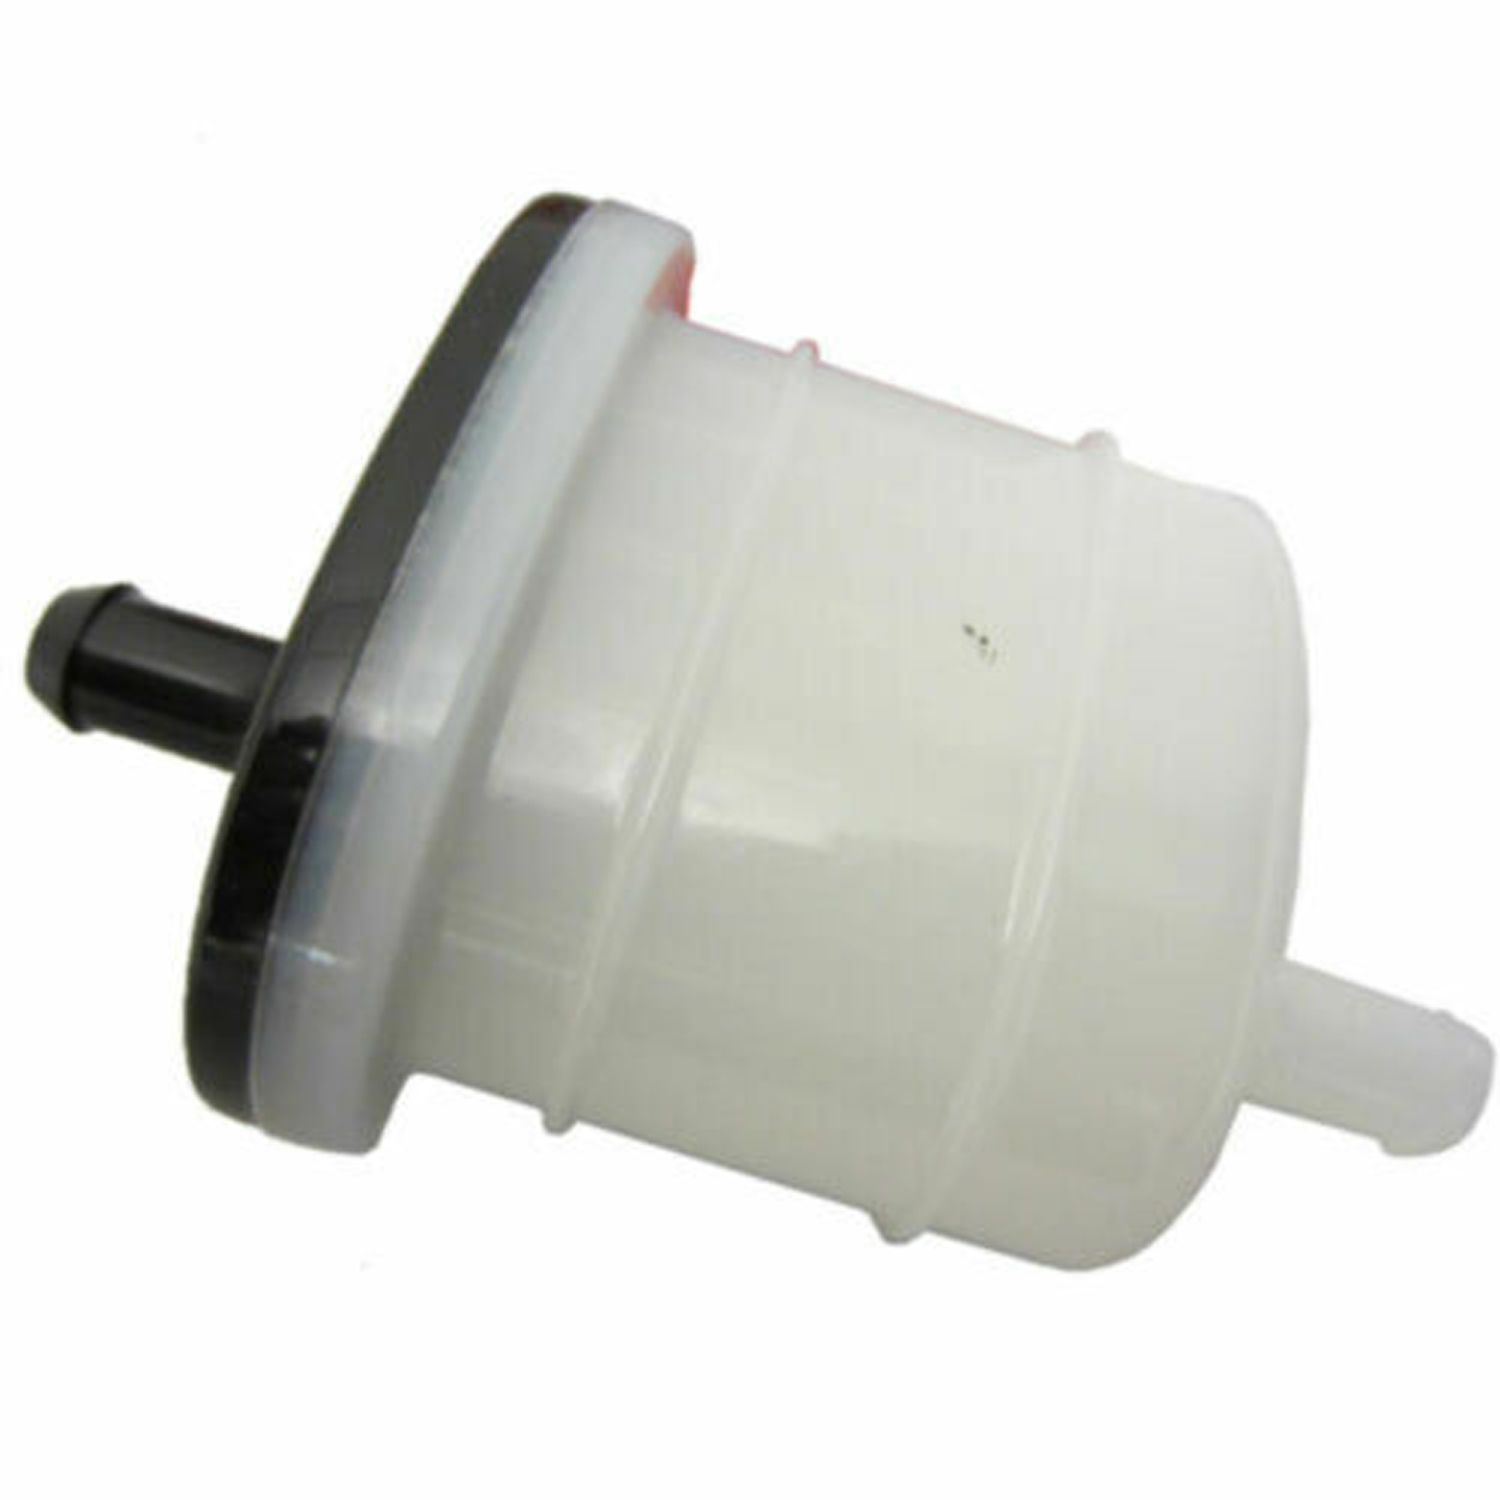 Yamaha New Oem Waverunner Gas Fuel Filter Xlt Gp Suv 1200 Kawasaki Jet Ski 800